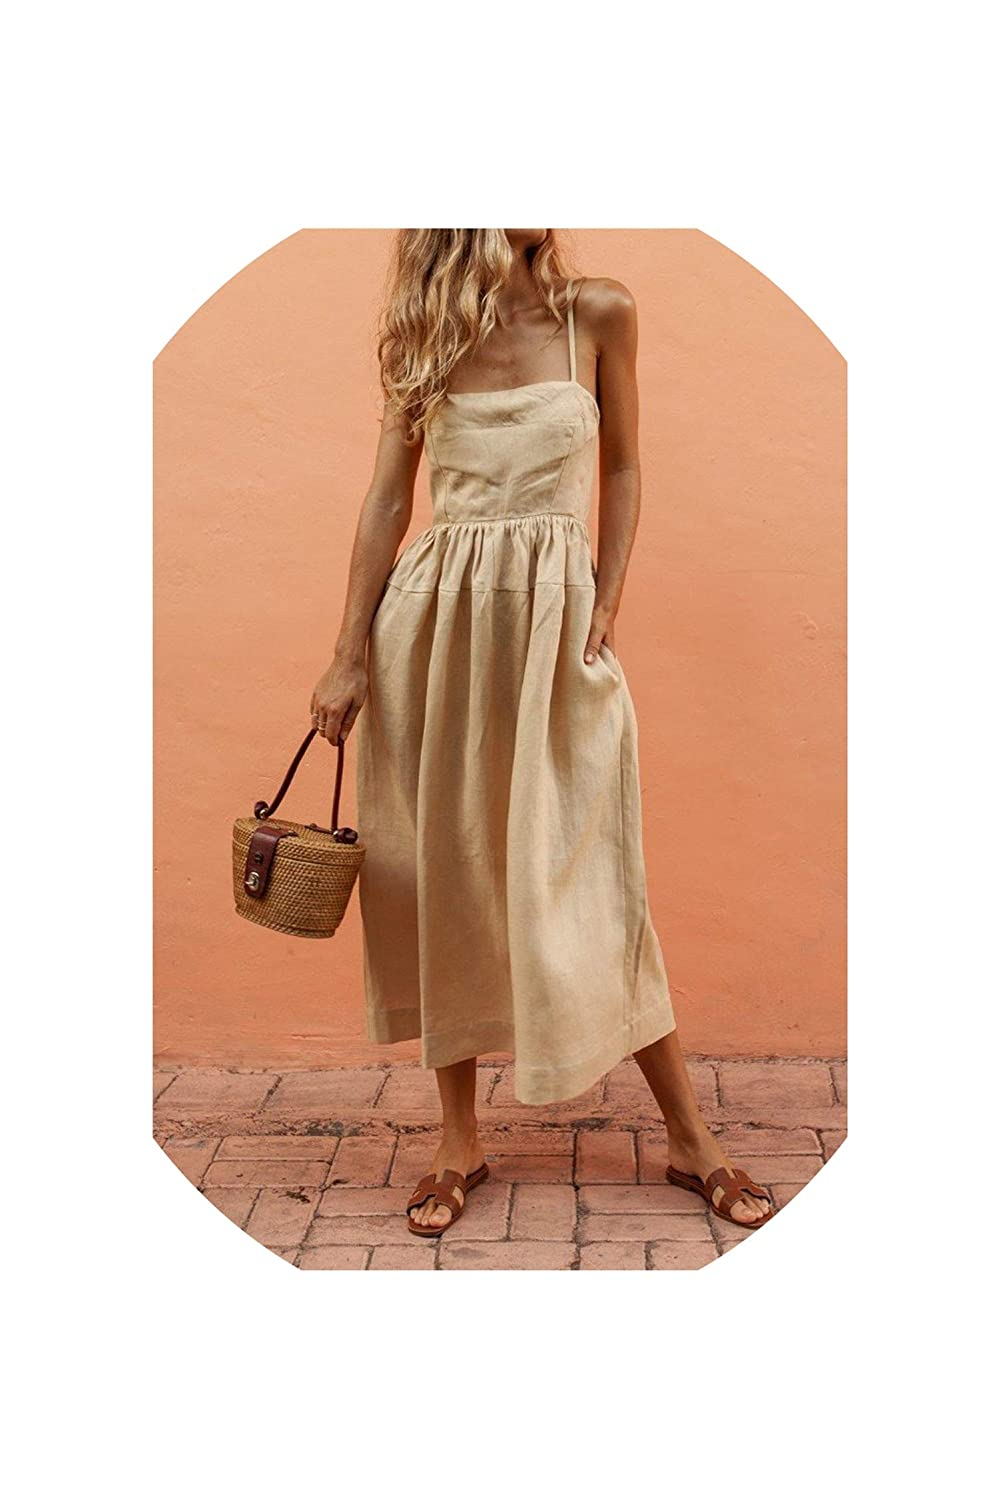 Khaki Maxi Beach Dress Women Strap Backless Pleated Casual Dresses Sleeveless Pockets Tunic Long Dress